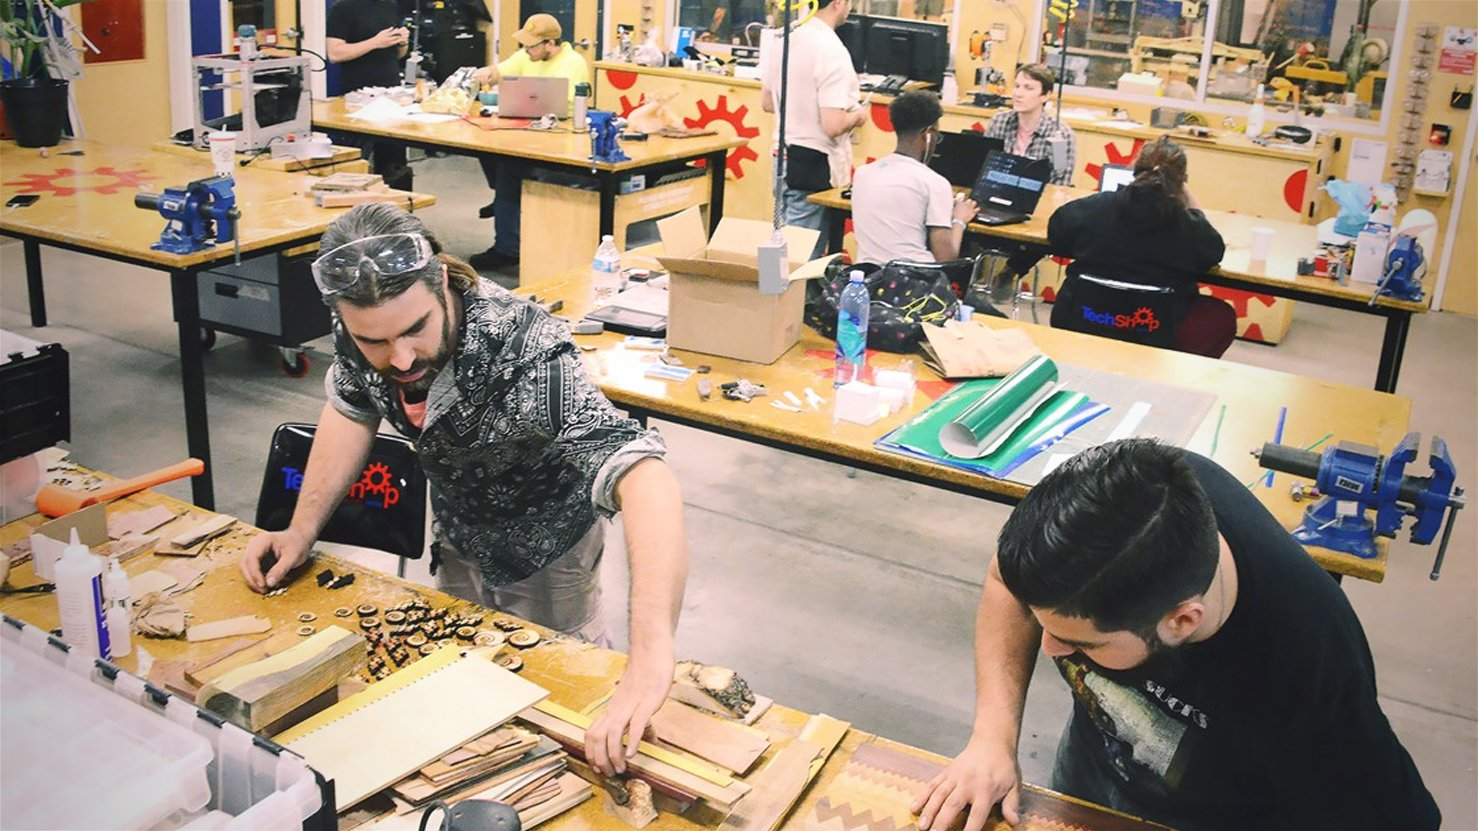 TechShop Faces Bankruptcy and Closes All 14 Shops | All3DP